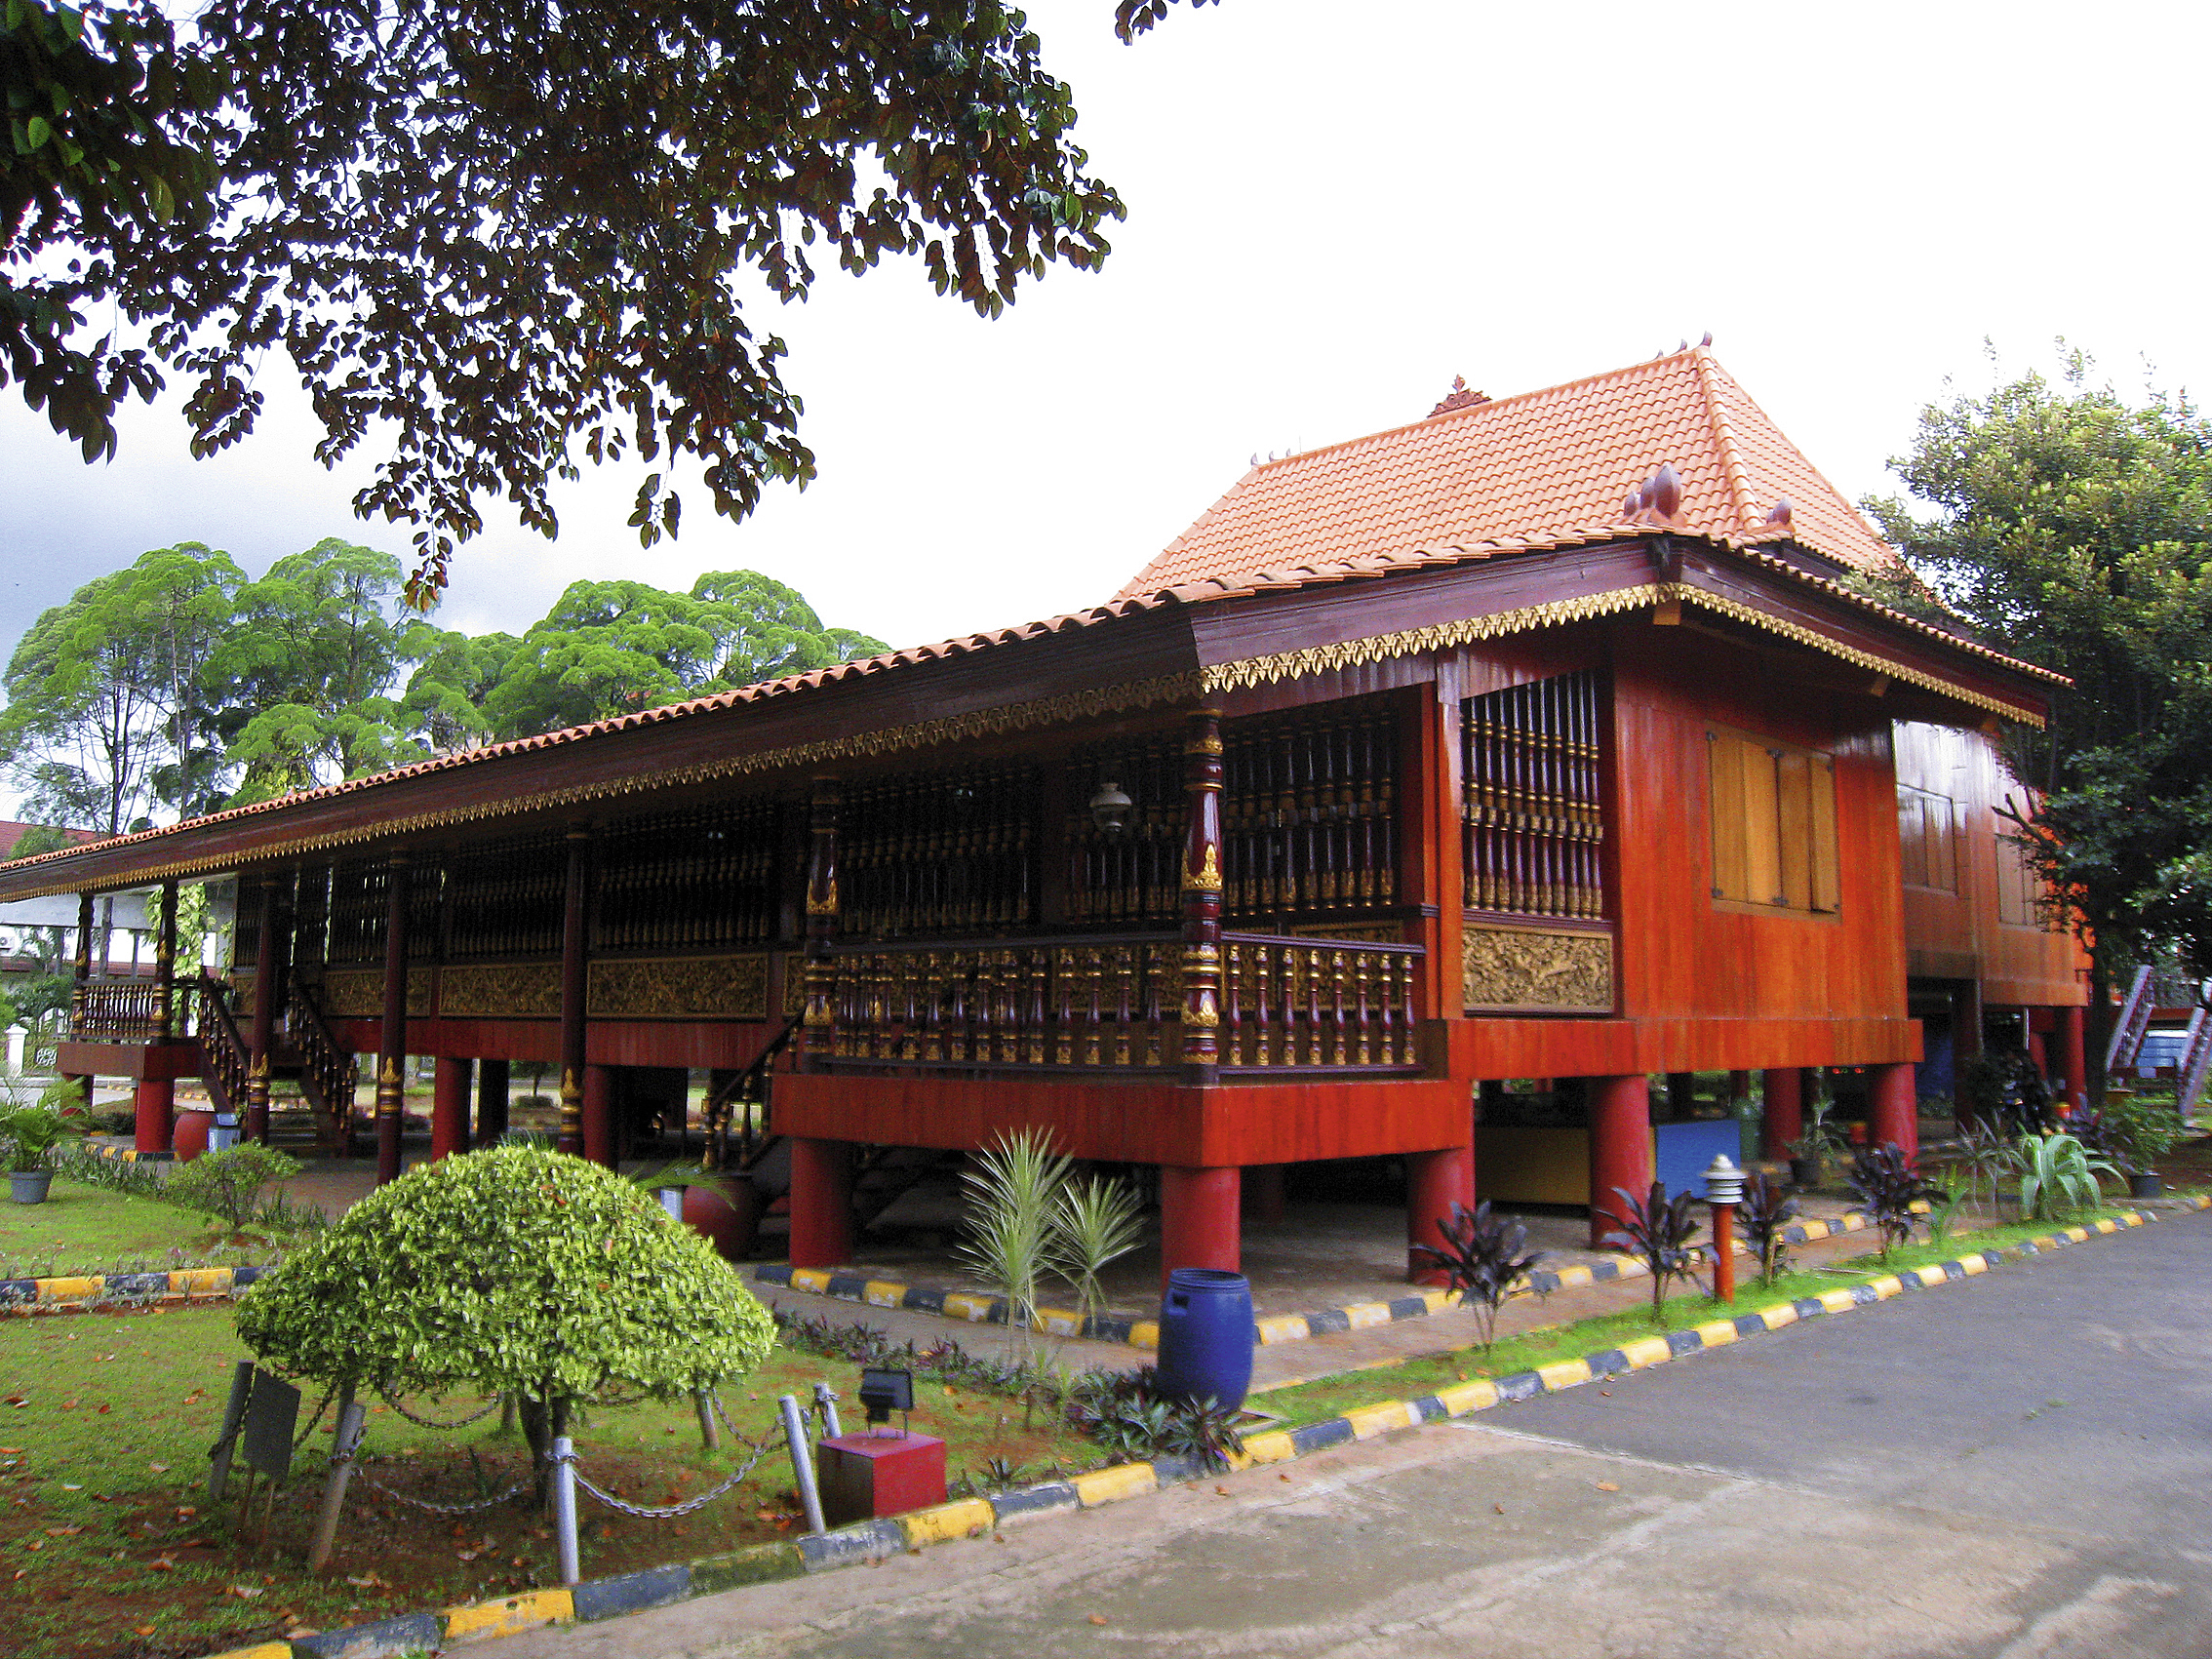 Rumah Limas, a South Sumatra traditional house at South Sumatra Pavilion, Taman Mini Indonesi Indah, Jakarta.